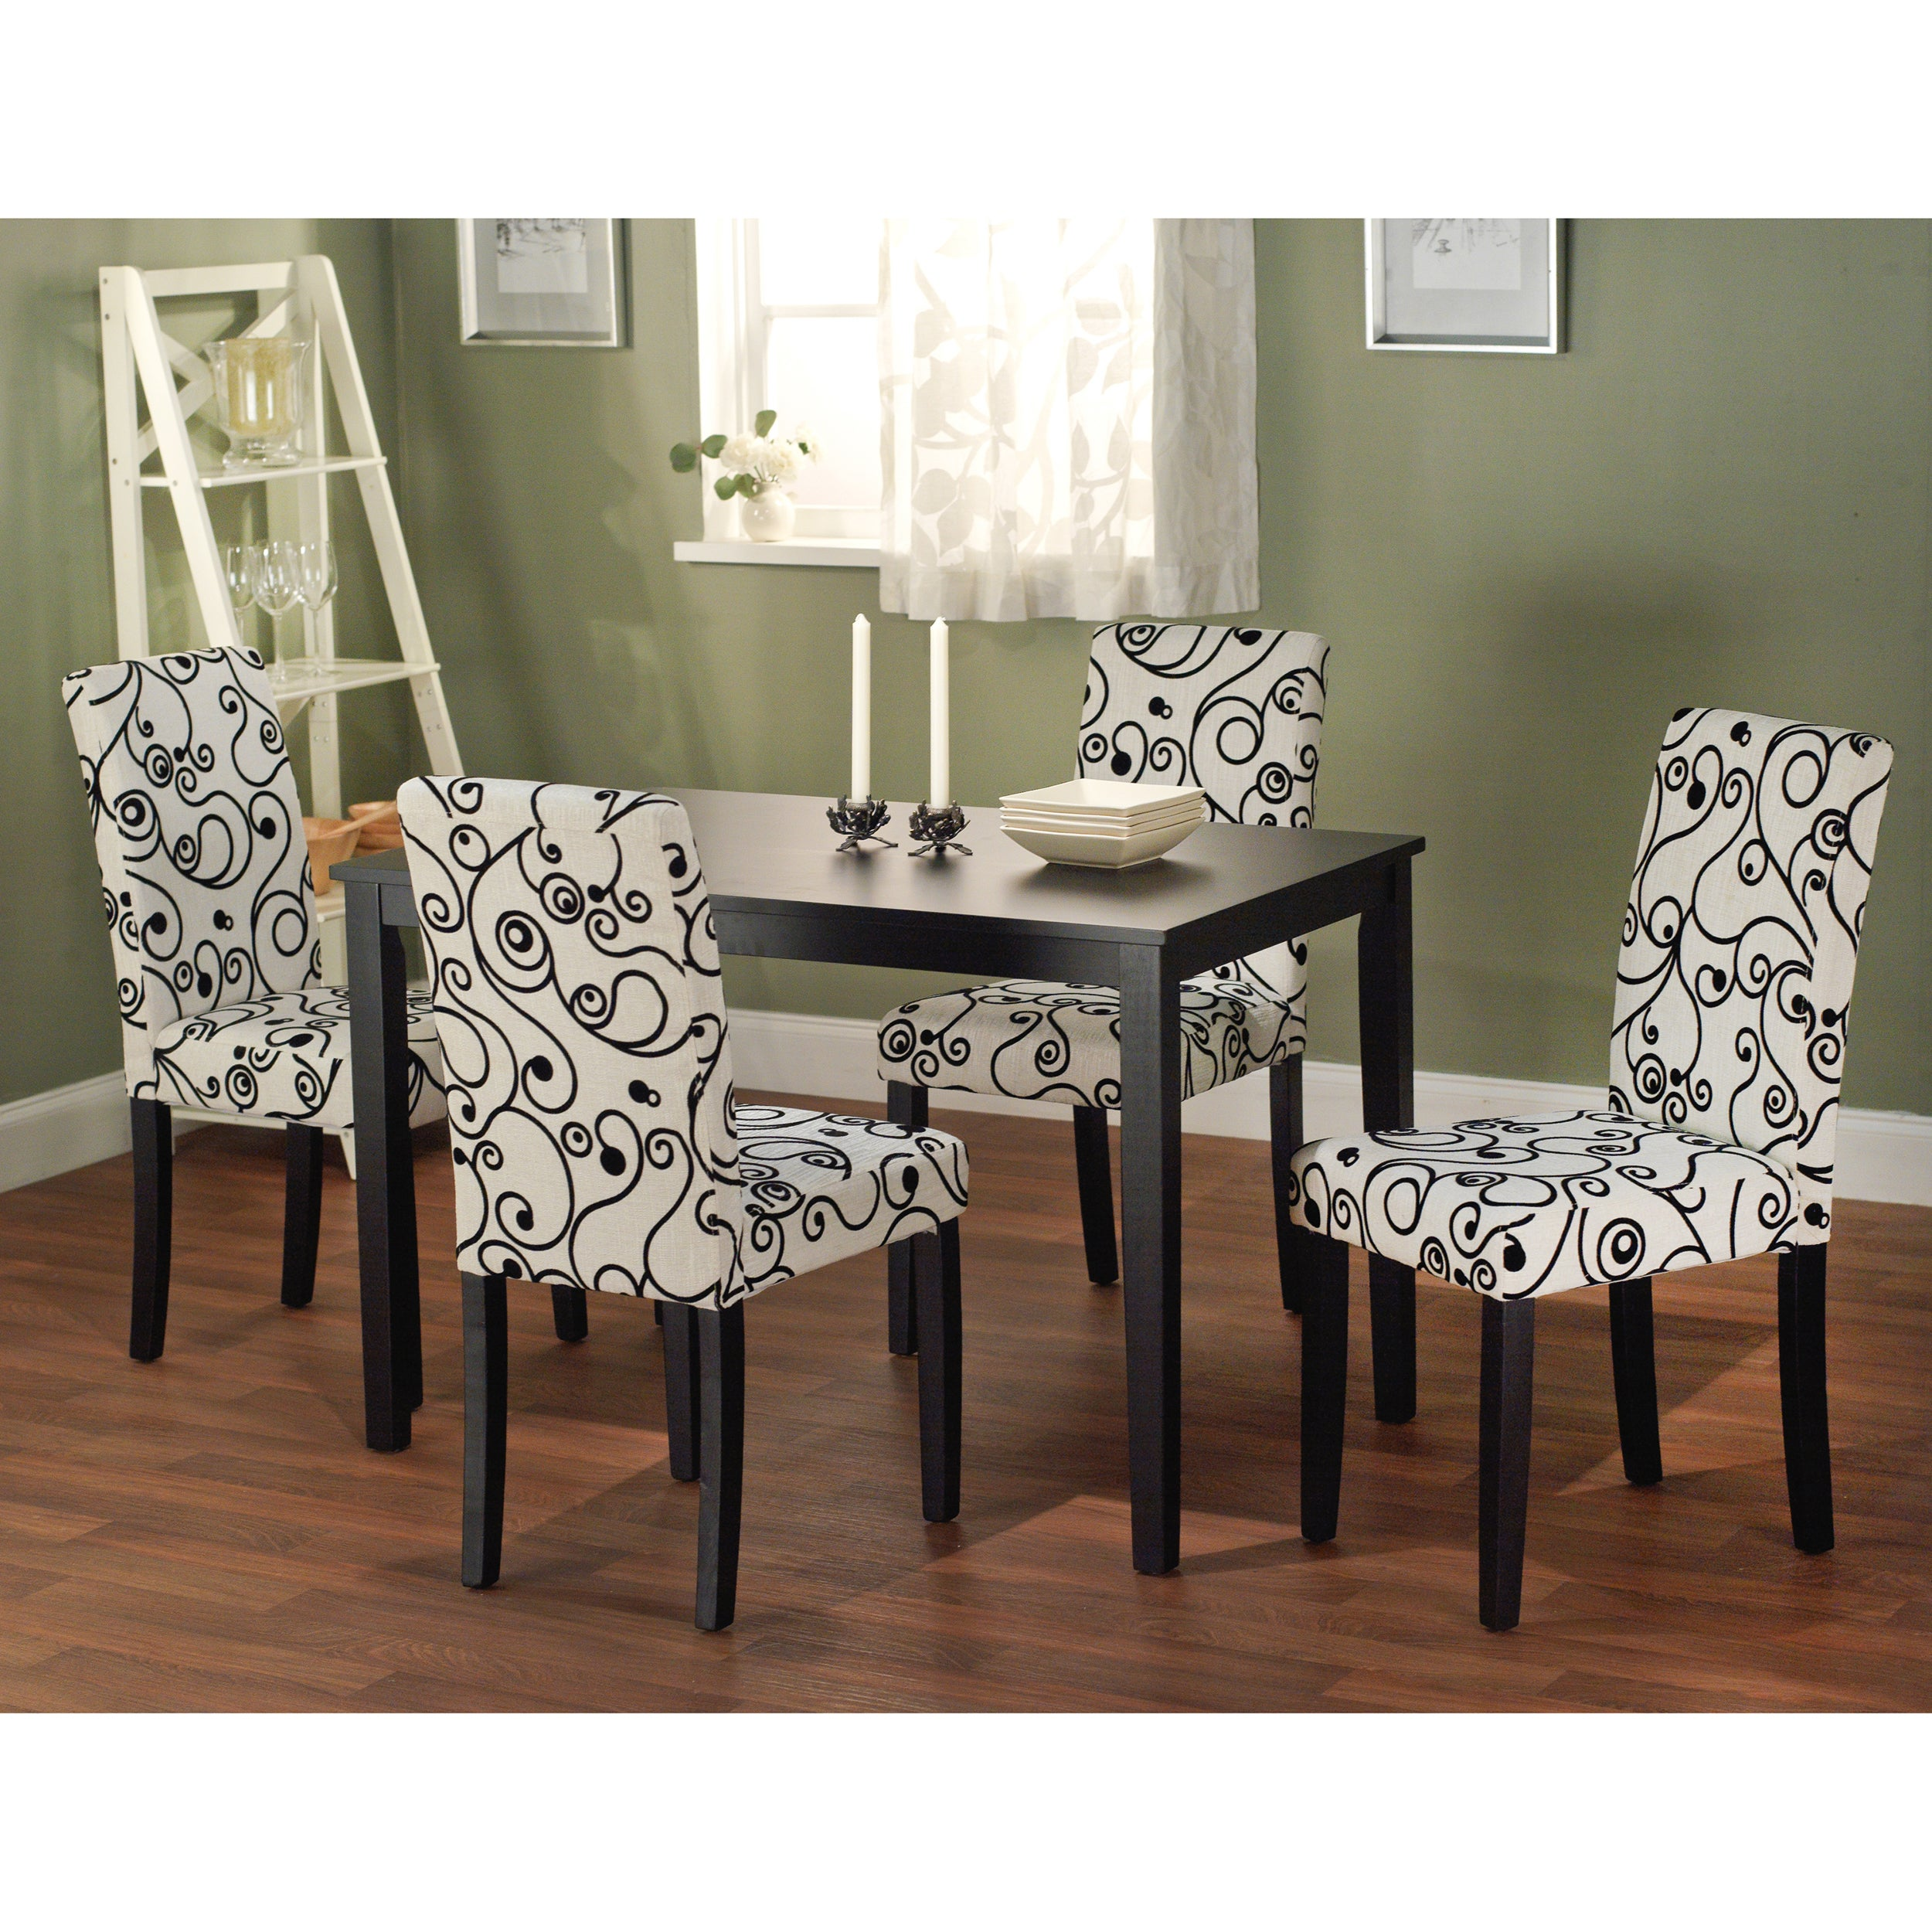 Sophia 5 Piece Parson Dining Set Table Chairs Room Piece Furniture Home Wood : eBay